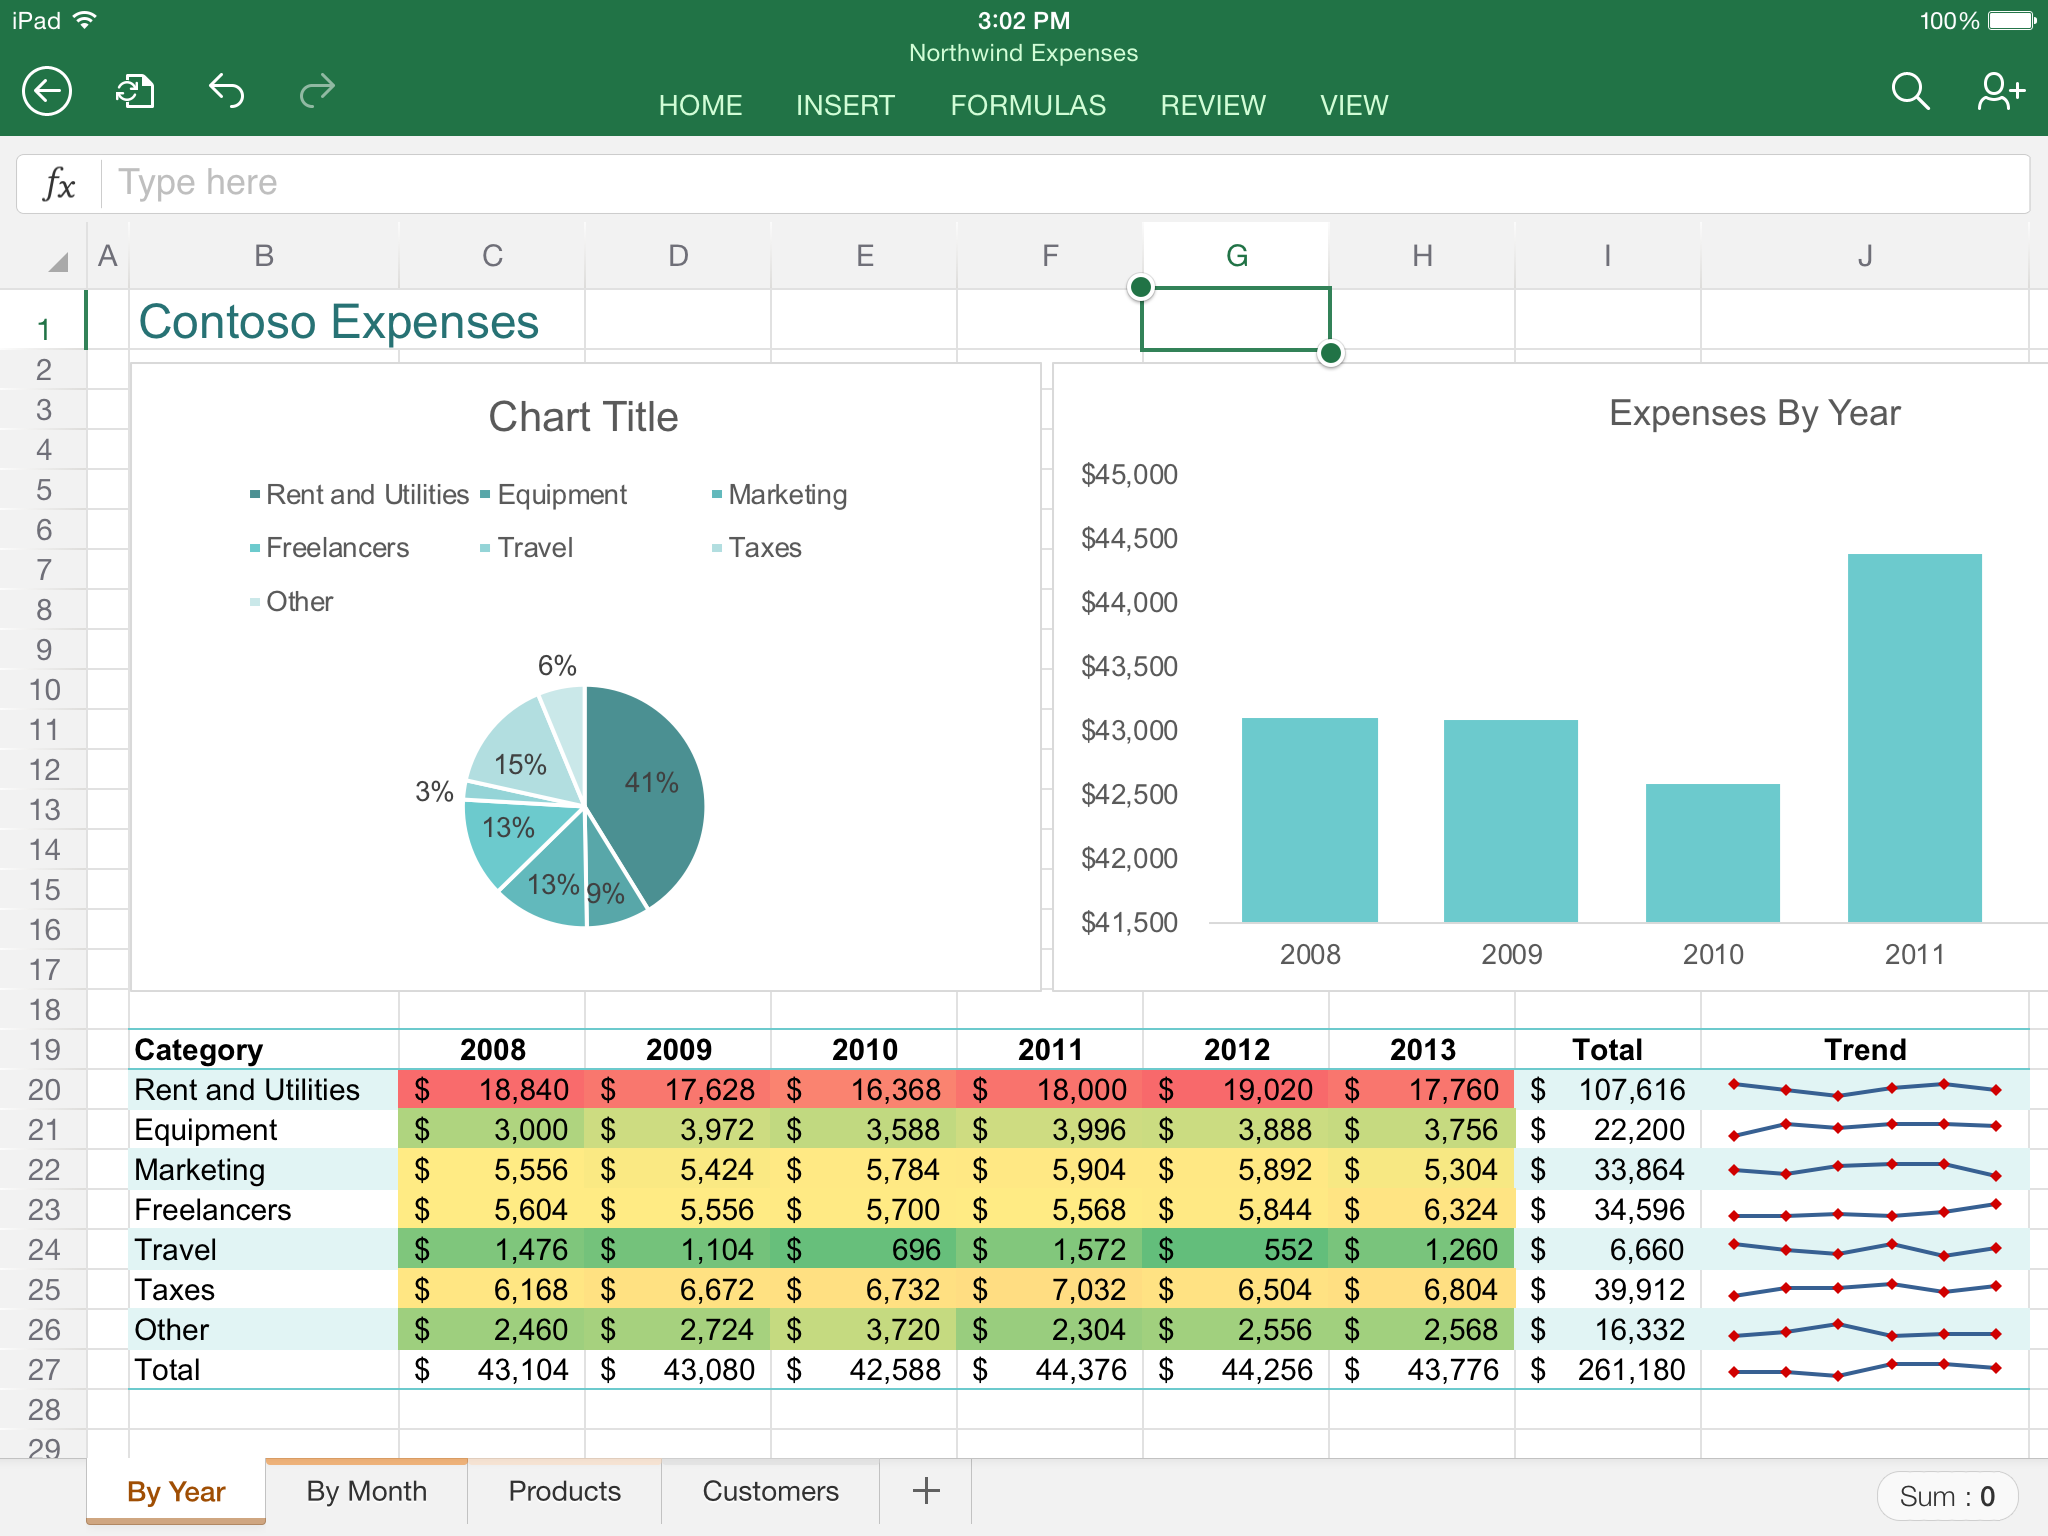 Ediblewildsus  Marvelous App Highlight Excel  Mobile Digital Now With Marvelous Excel In Action With Divine Microsoft Excel Inventory Template Also Gantt Chart Excel Template Download In Addition Unprotect Excel File And Excel  Data Analysis Toolpak As Well As How To Create Bar Chart In Excel Additionally Online Excel Training Courses From Youstonybrookedu With Ediblewildsus  Marvelous App Highlight Excel  Mobile Digital Now With Divine Excel In Action And Marvelous Microsoft Excel Inventory Template Also Gantt Chart Excel Template Download In Addition Unprotect Excel File From Youstonybrookedu